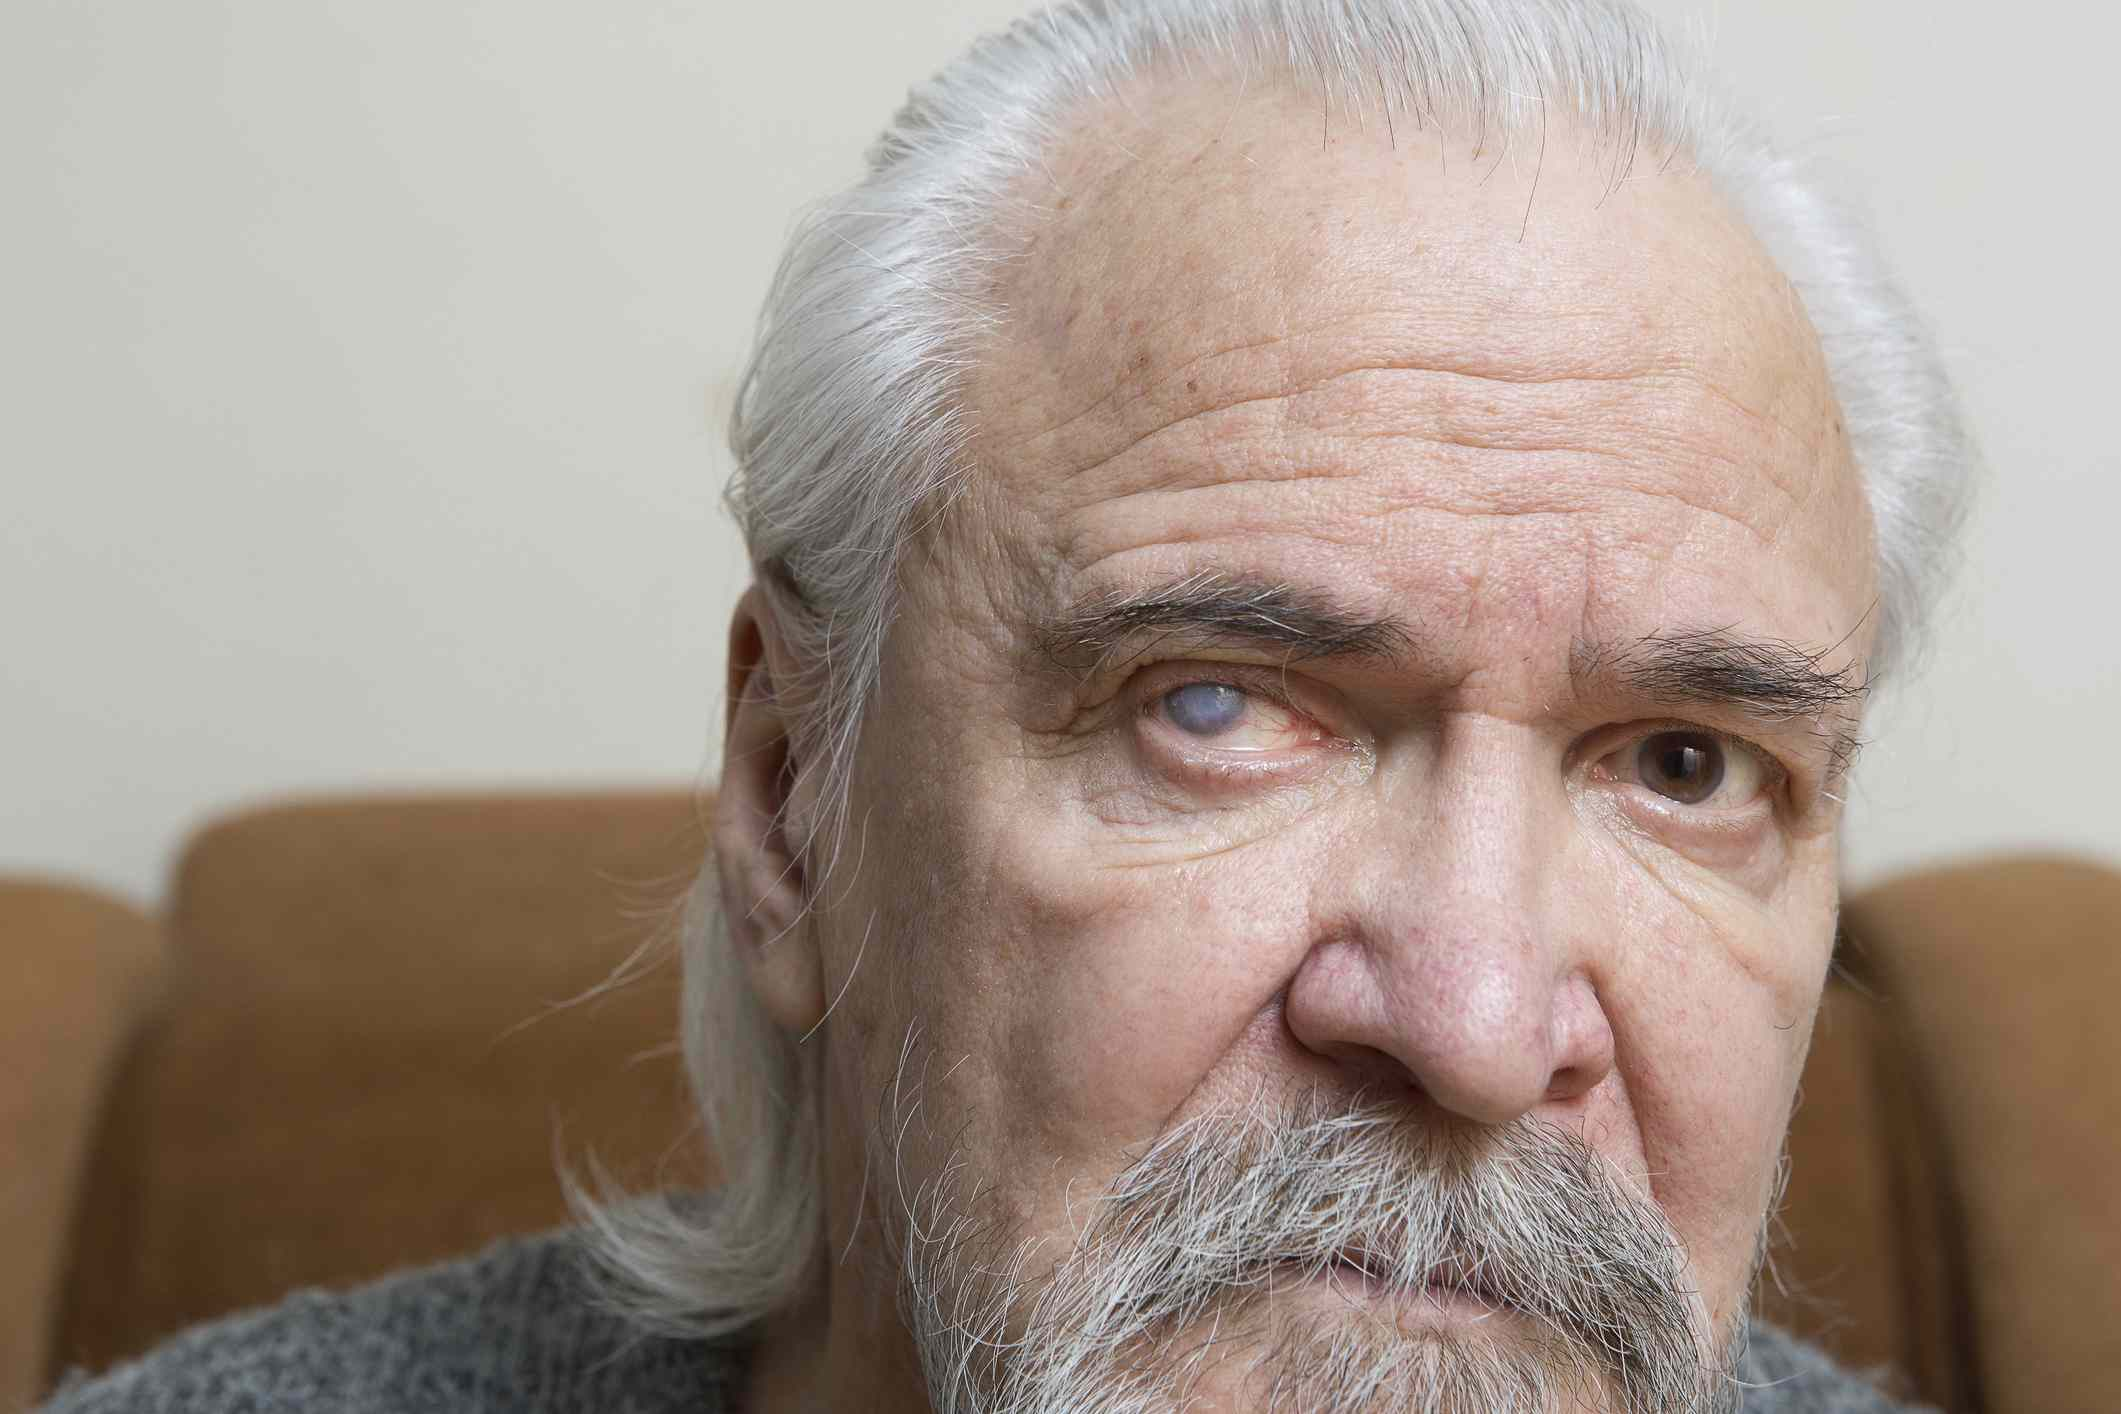 Grey haired man with a cataract in one eye.